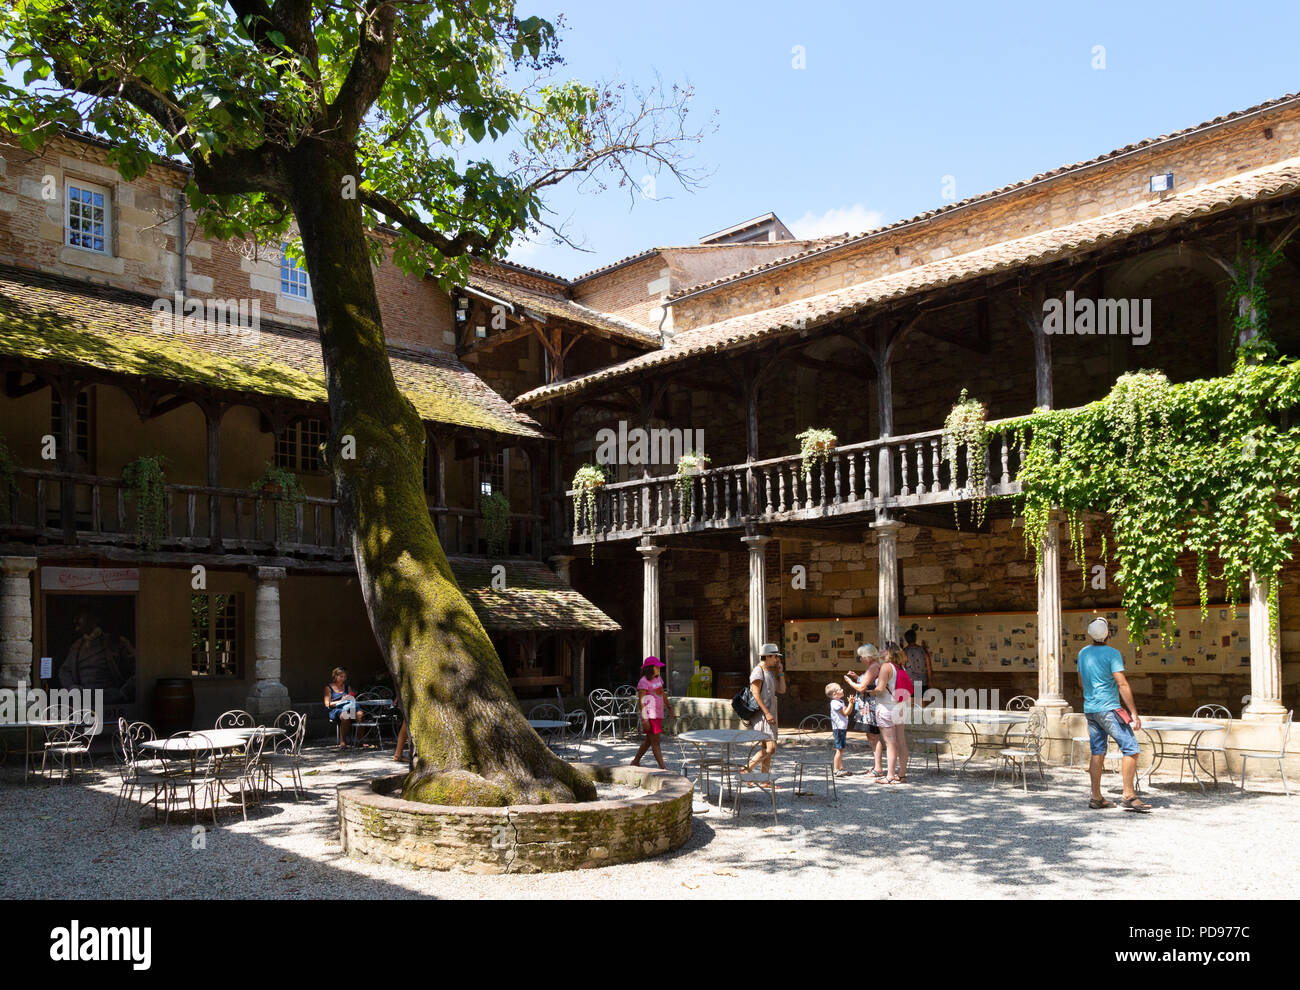 Tourists in the courtyard, Maison des Vins, Bergerac Old Town, Dordogne, France Europe - Stock Image